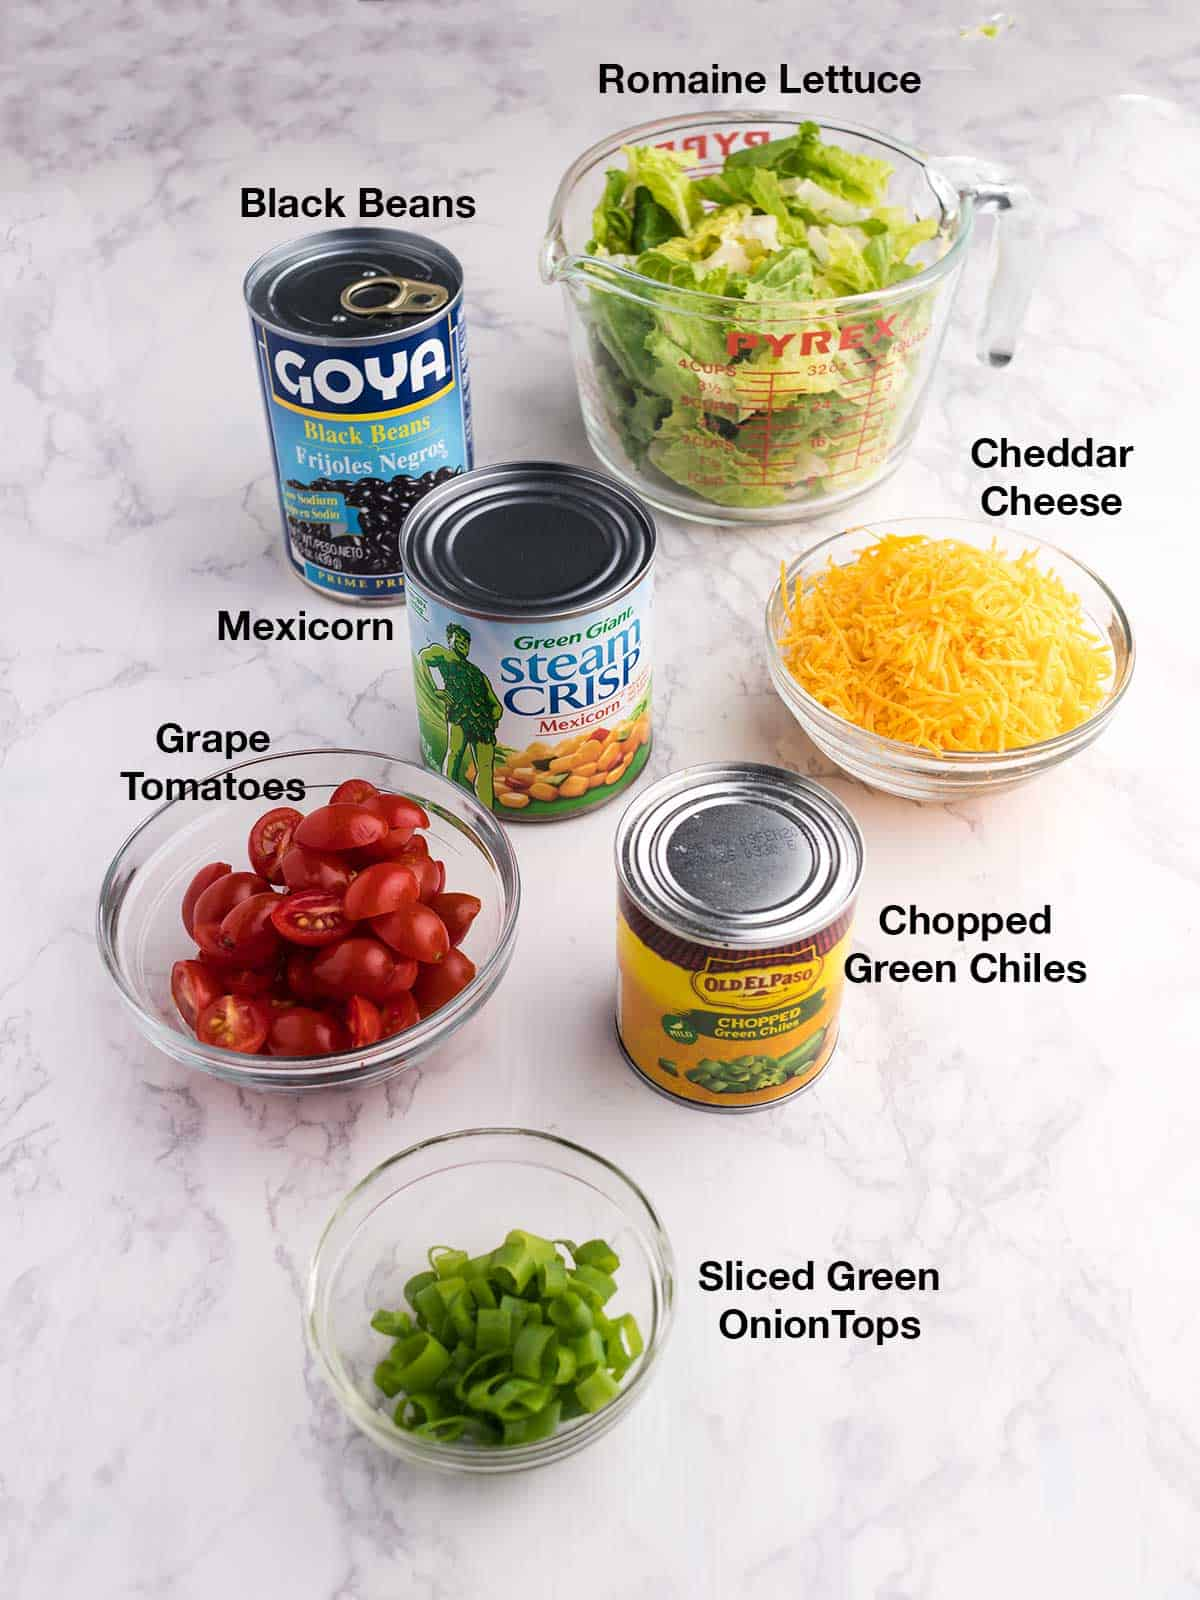 Ingredients for layered salad